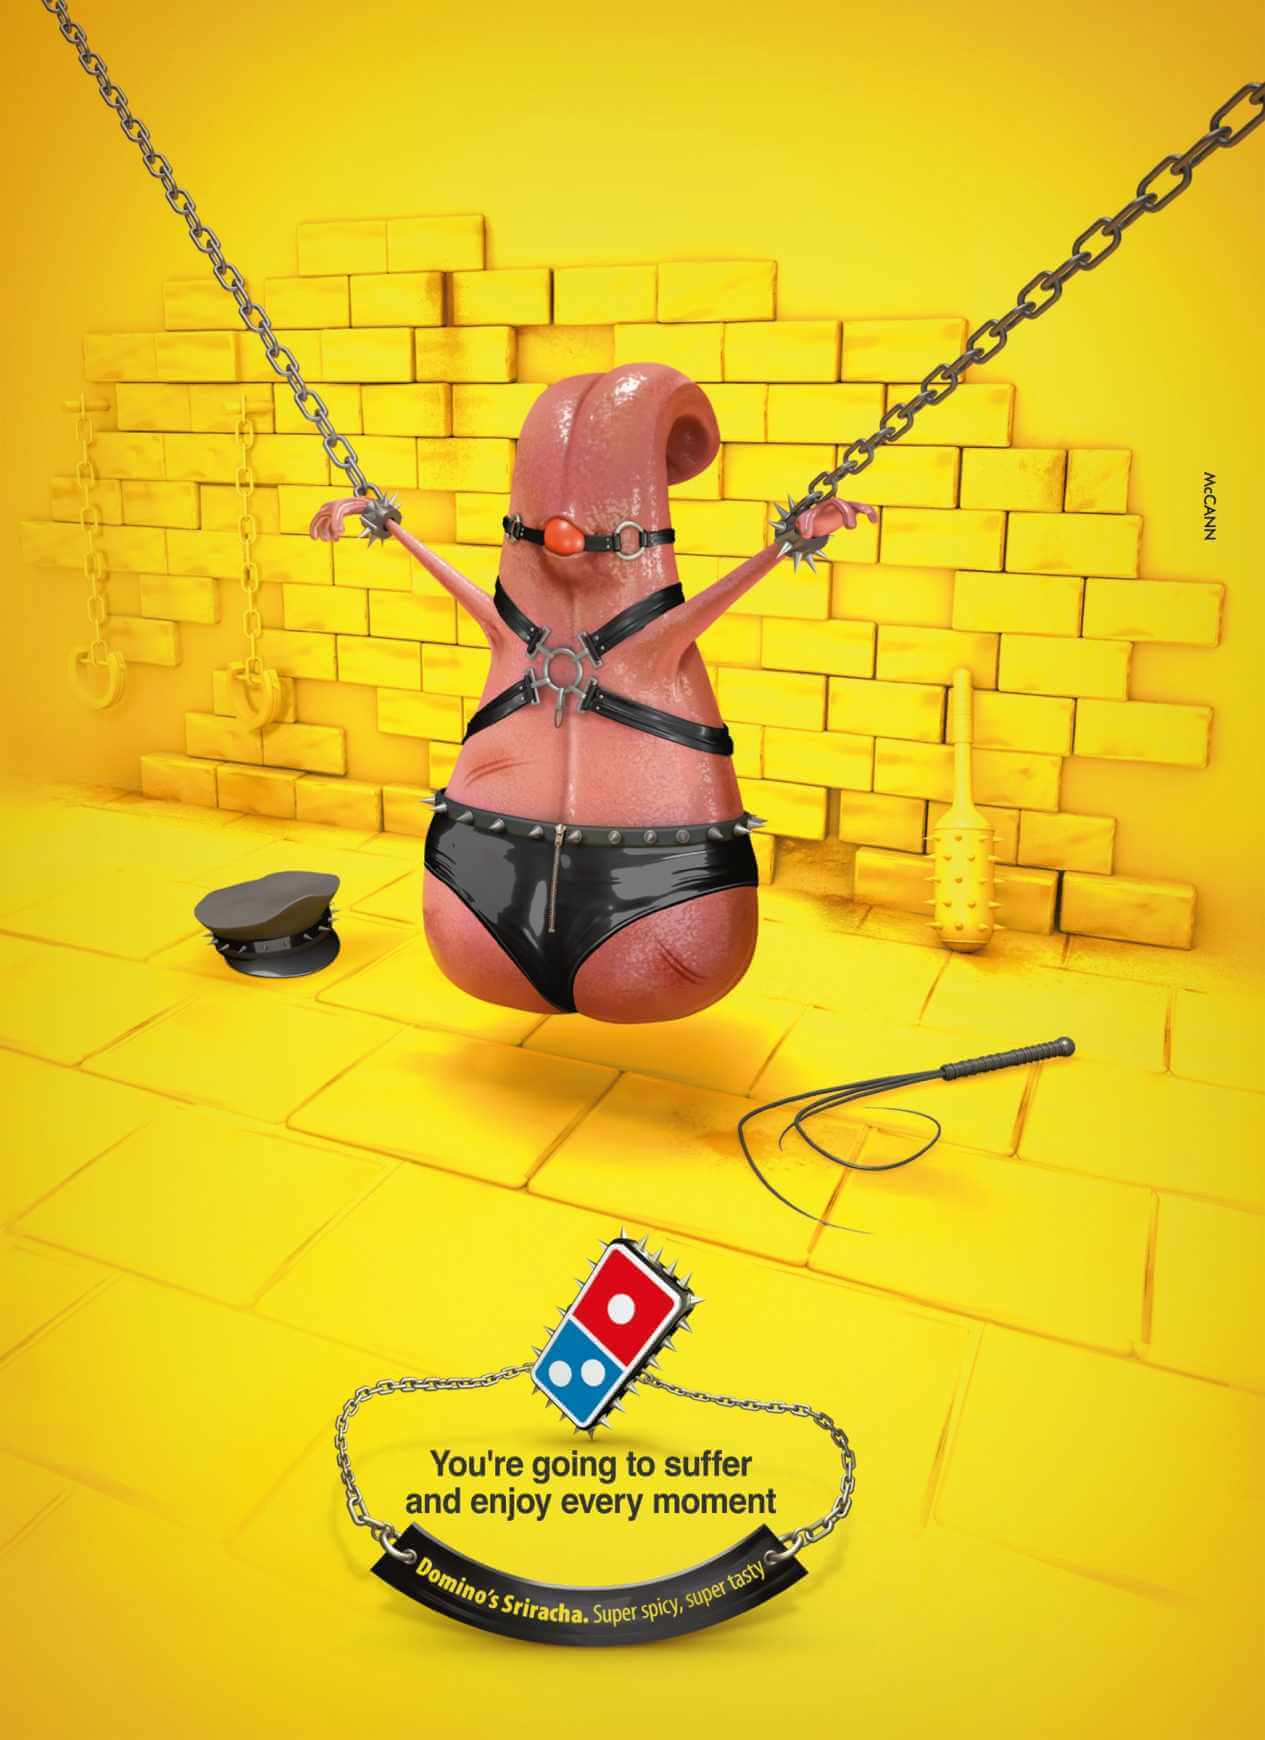 Dominos Pizza: Amor apache.